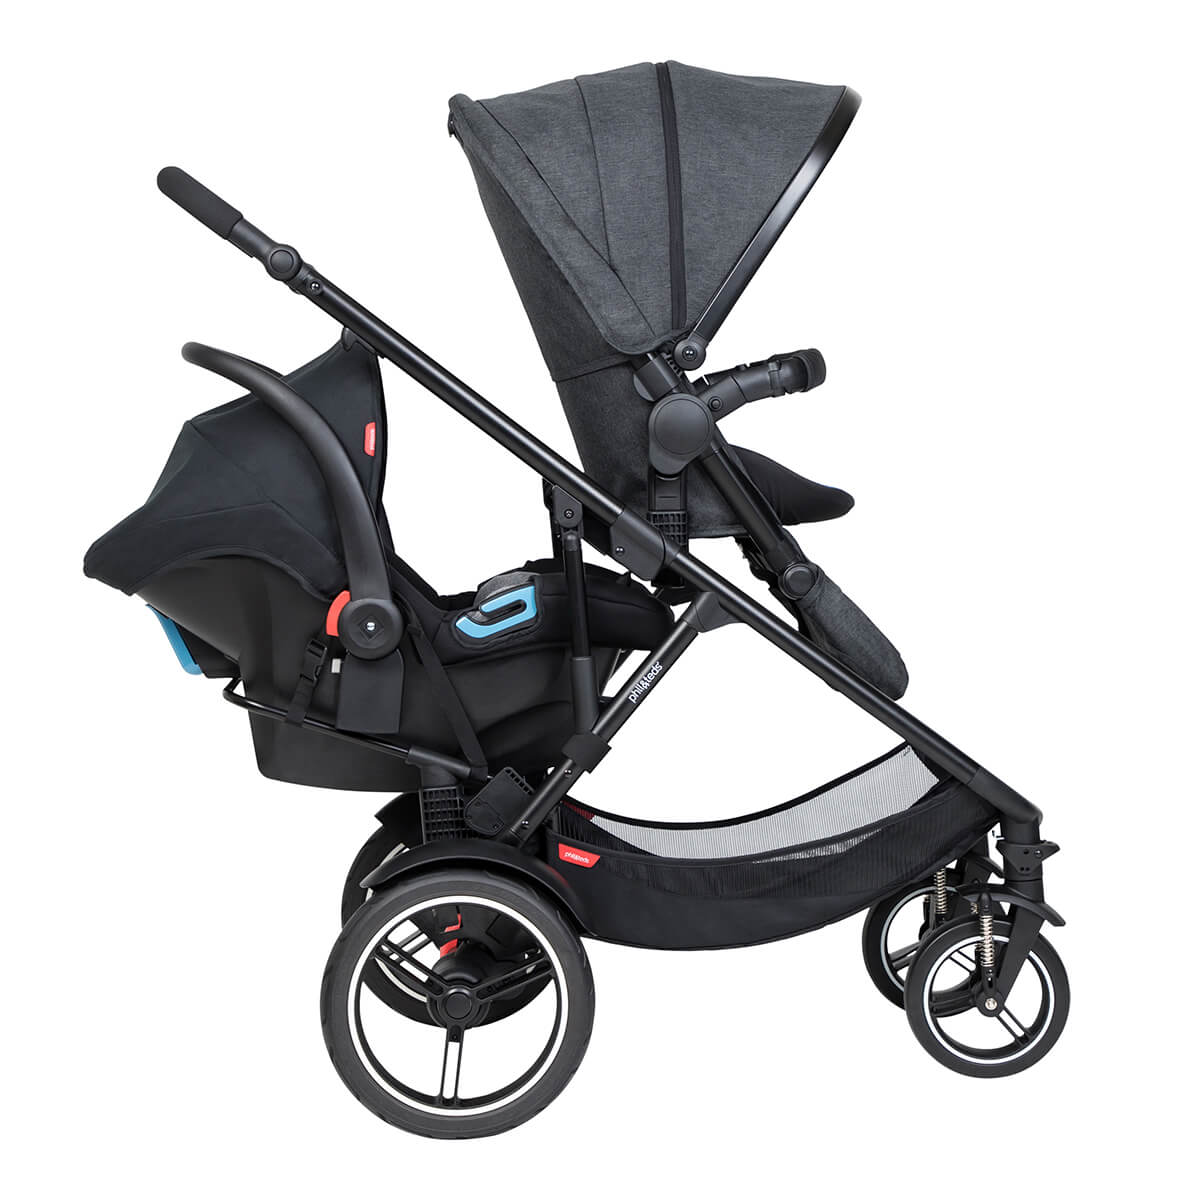 https://cdn.accentuate.io/4390319587424/19440099688632/philteds-voyager-buggy-in-forward-facing-mode-with-travel-system-in-the-rear-v1626488673284.jpg?1200x1200